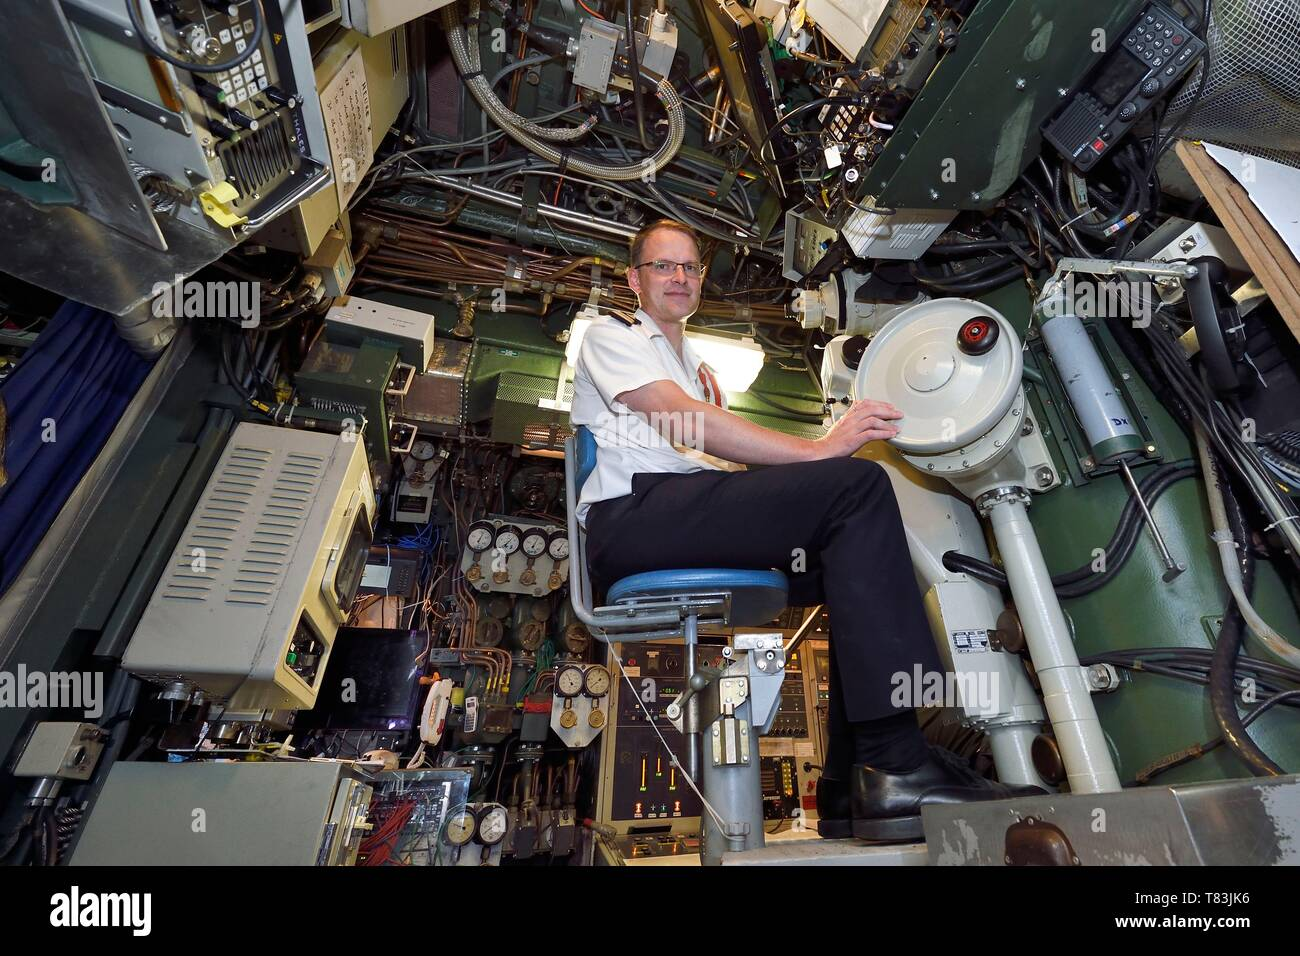 France, Var, Toulon, the naval base (Arsenal), Commander Nicolas Faure at periscope in the central navigation and operation room, Commander of the nuclear attack submarine (SNA) Casabianca (Rubis type) - Stock Image